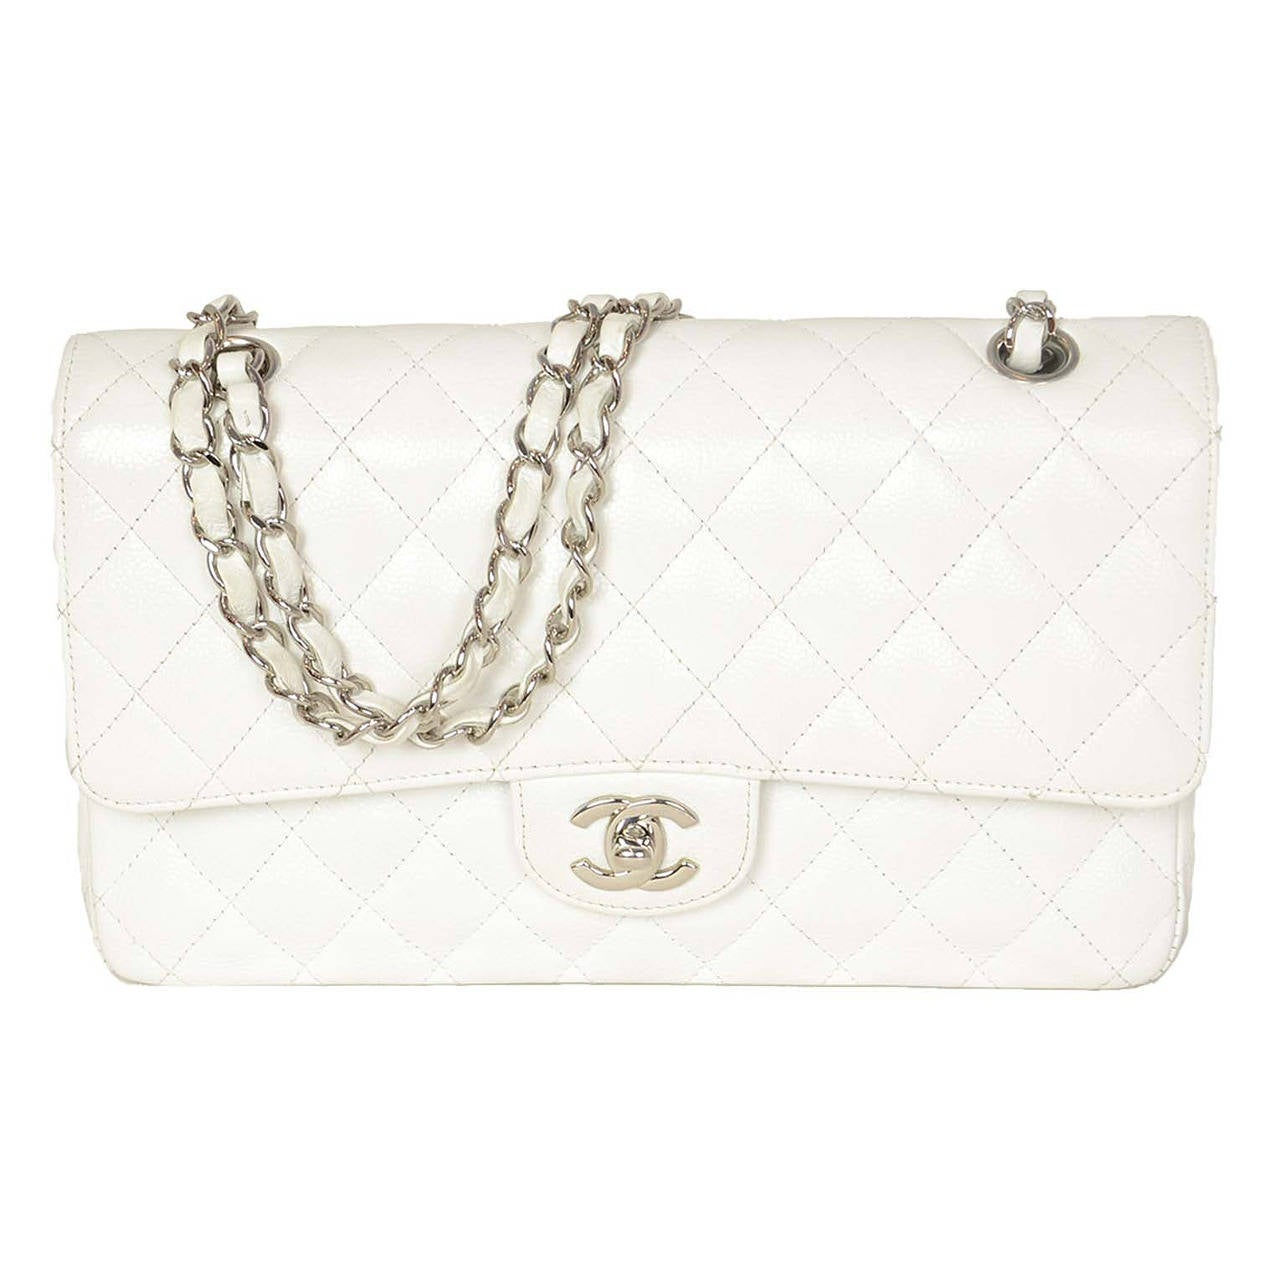 "CHANEL White Quilted Caviar Double Flap 10"" Classic Bag 1"